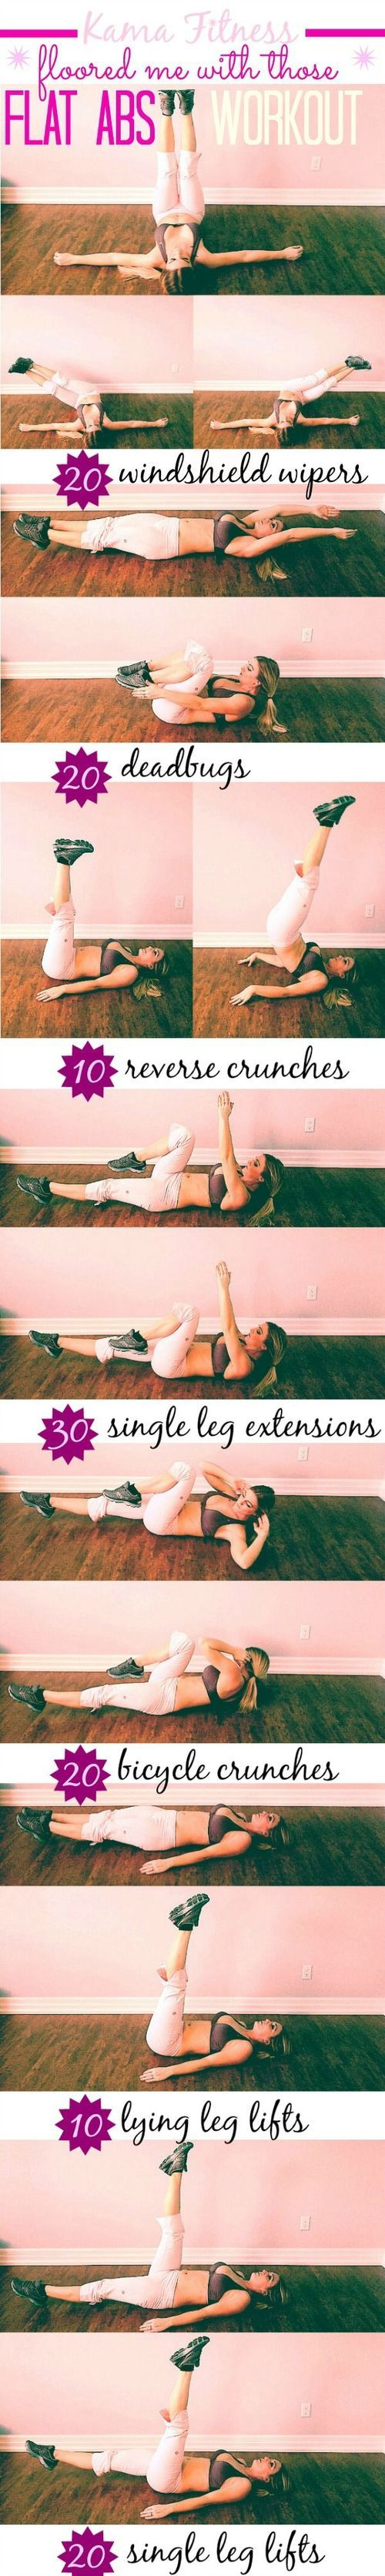 Get floored for flat abs. | Ab workout worth trying out. #youresopretty